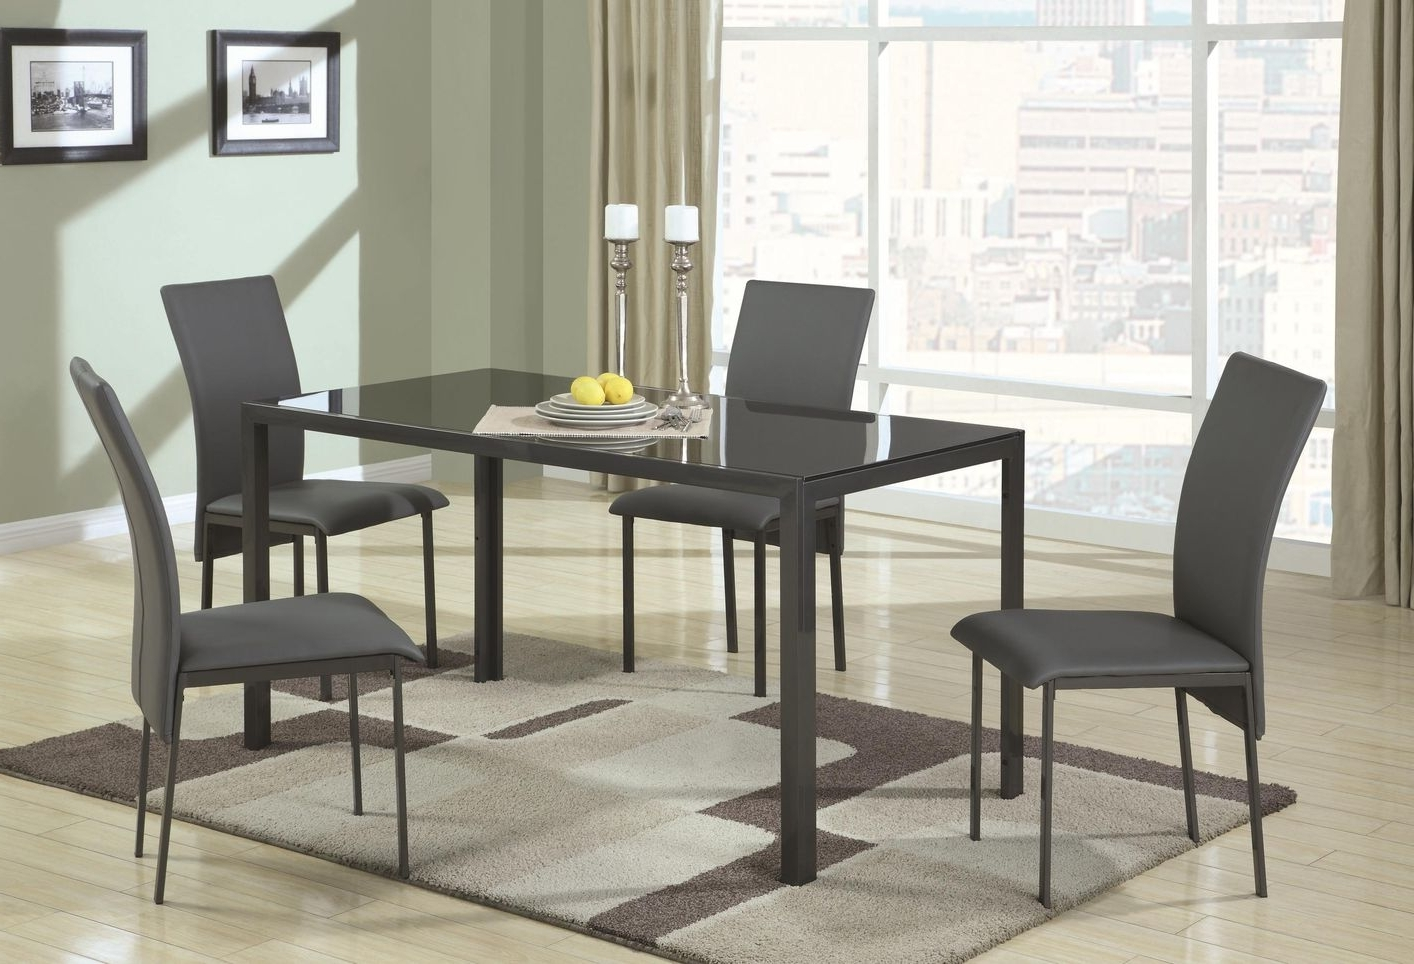 Square Black Glass Dining Tables Within Famous Shelby Black Metal And Glass Dining Table Set – Steal A Sofa (View 9 of 25)